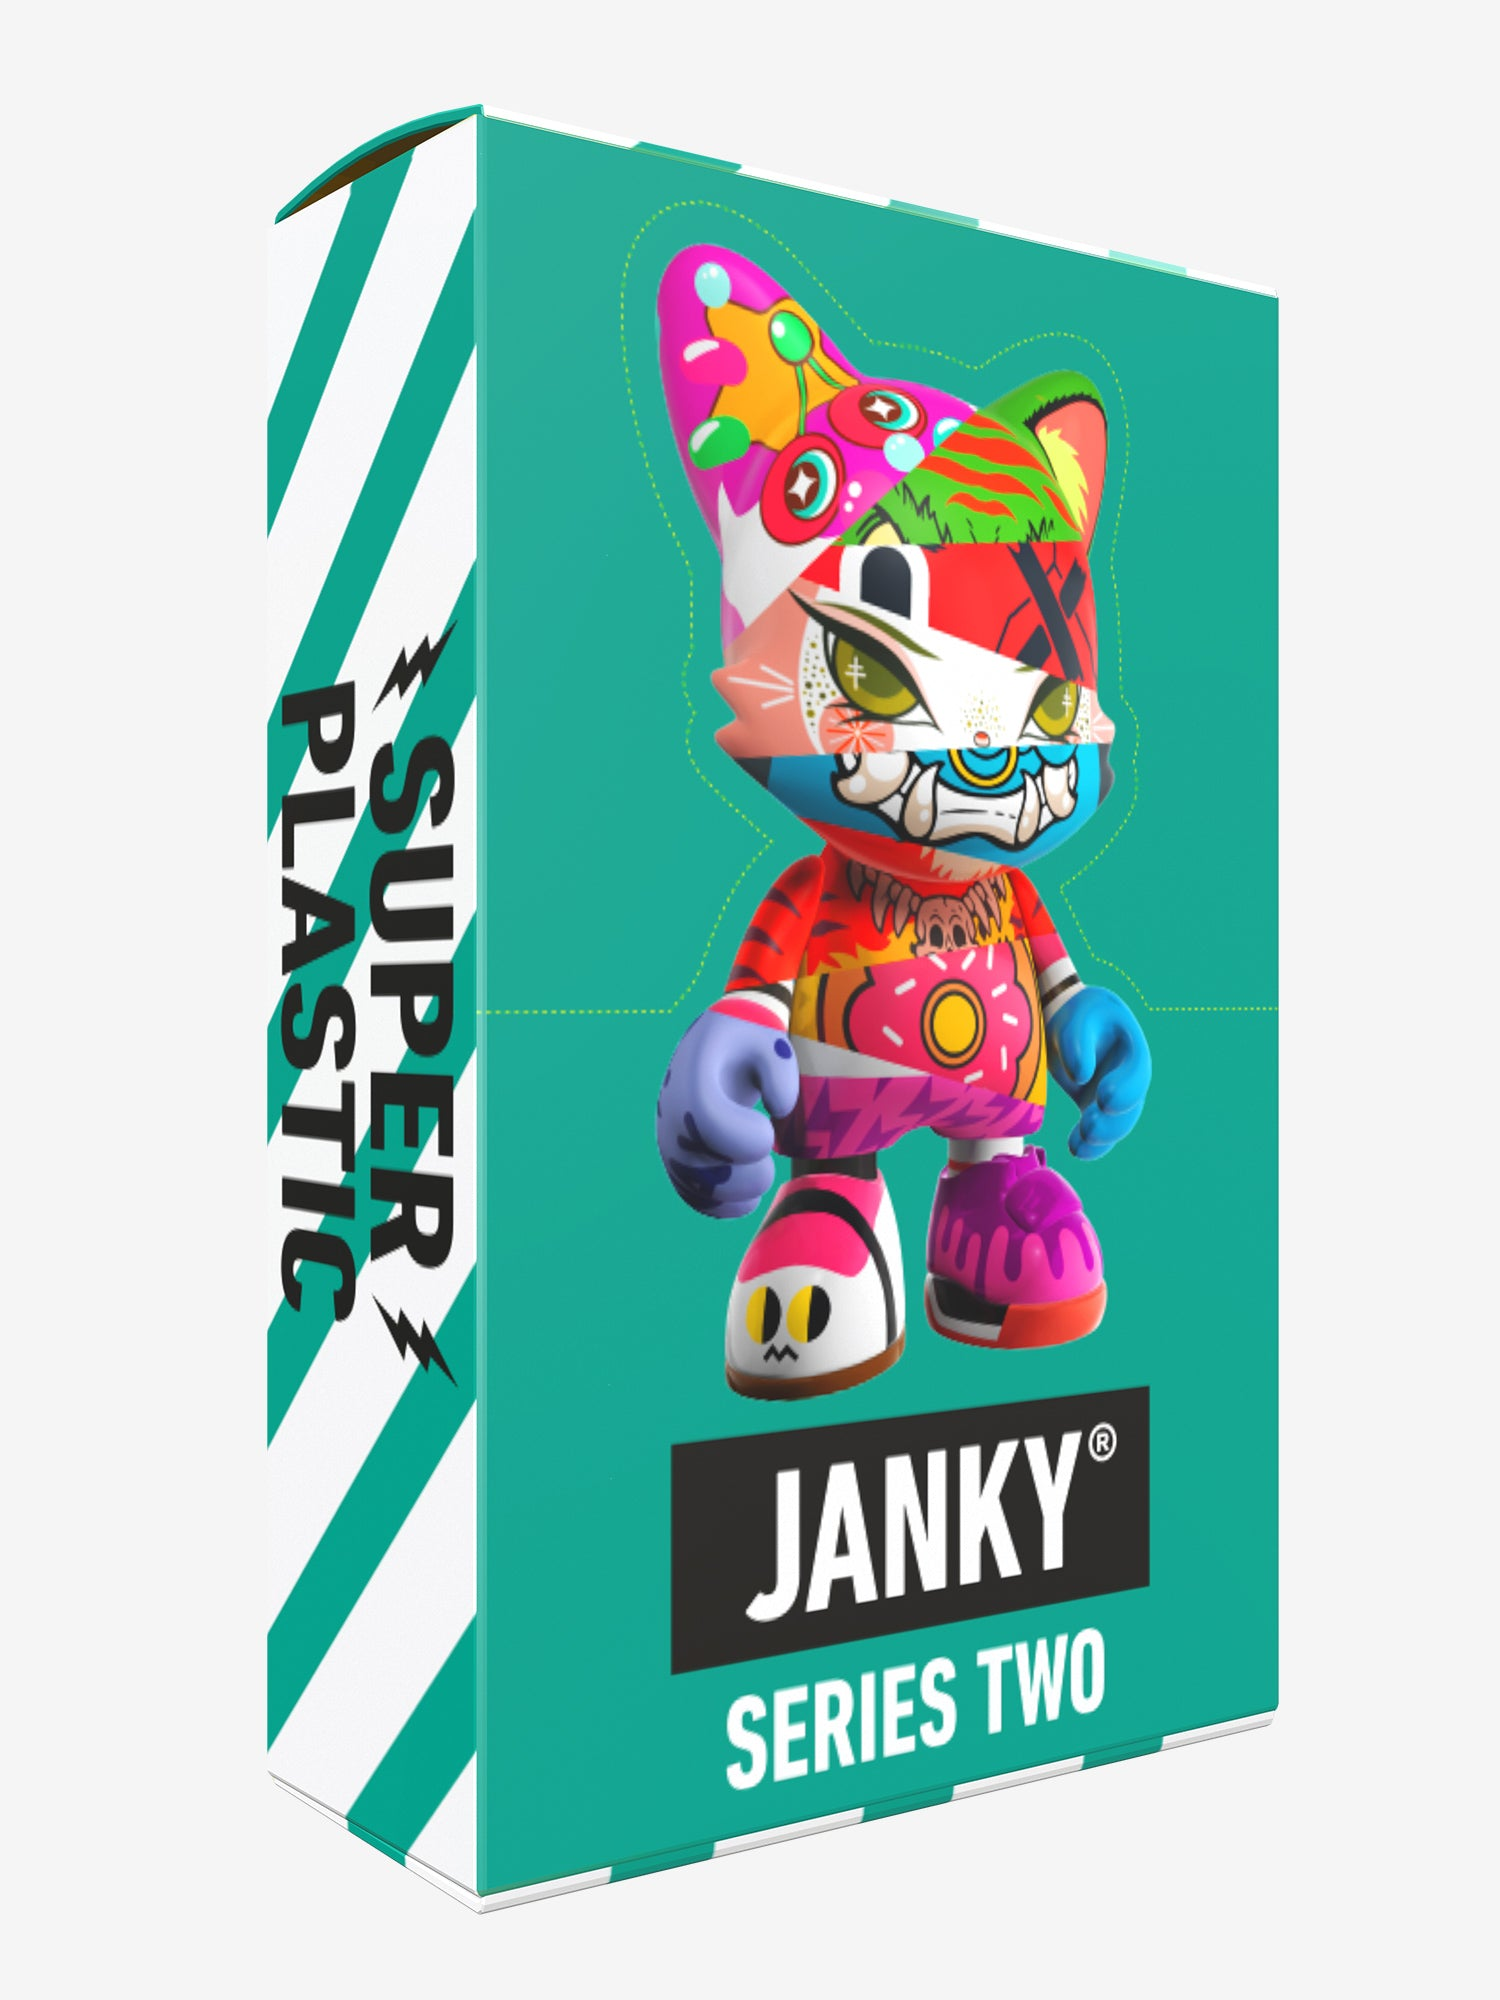 Janky Series Two